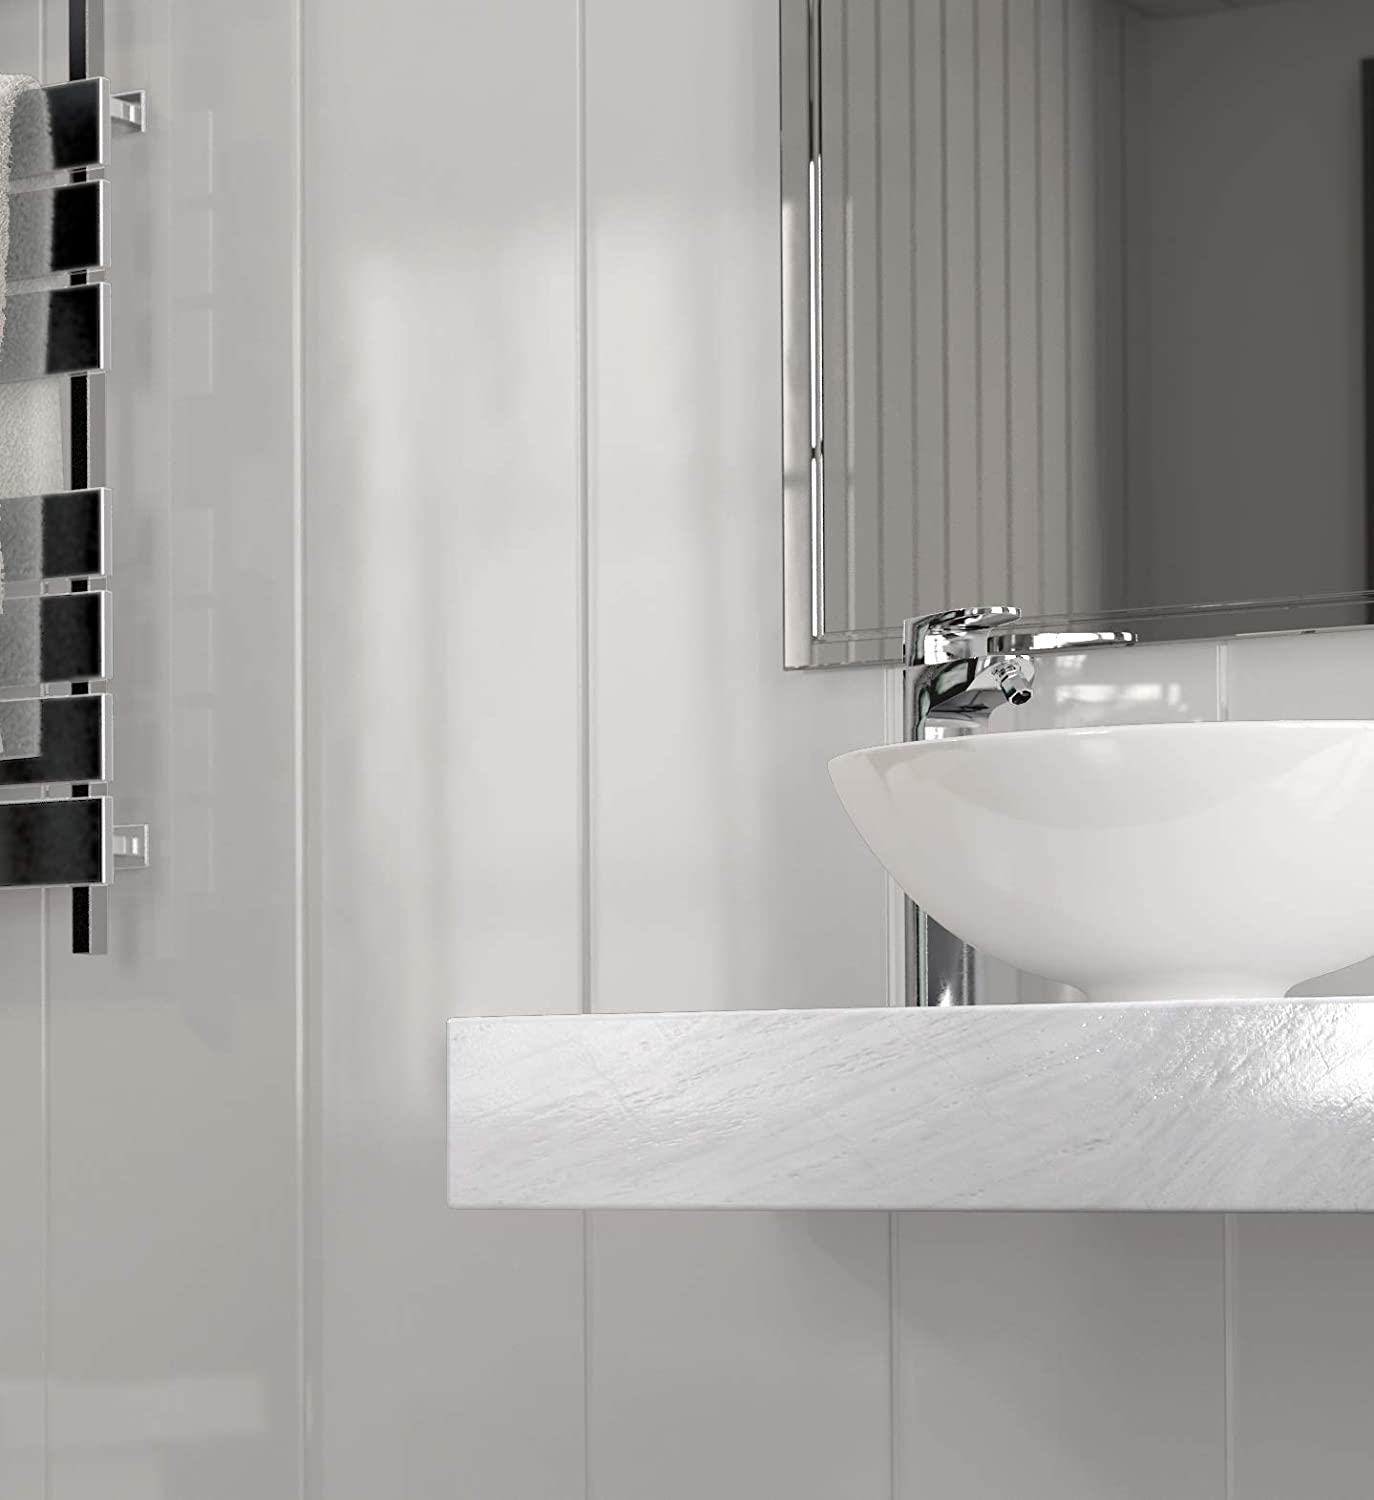 8 Pack The Cladding Store Gloss White Bathroom PVC Cladding Shower Ceiling Kitchen Wet Wall Panels UPVC Shower Panels